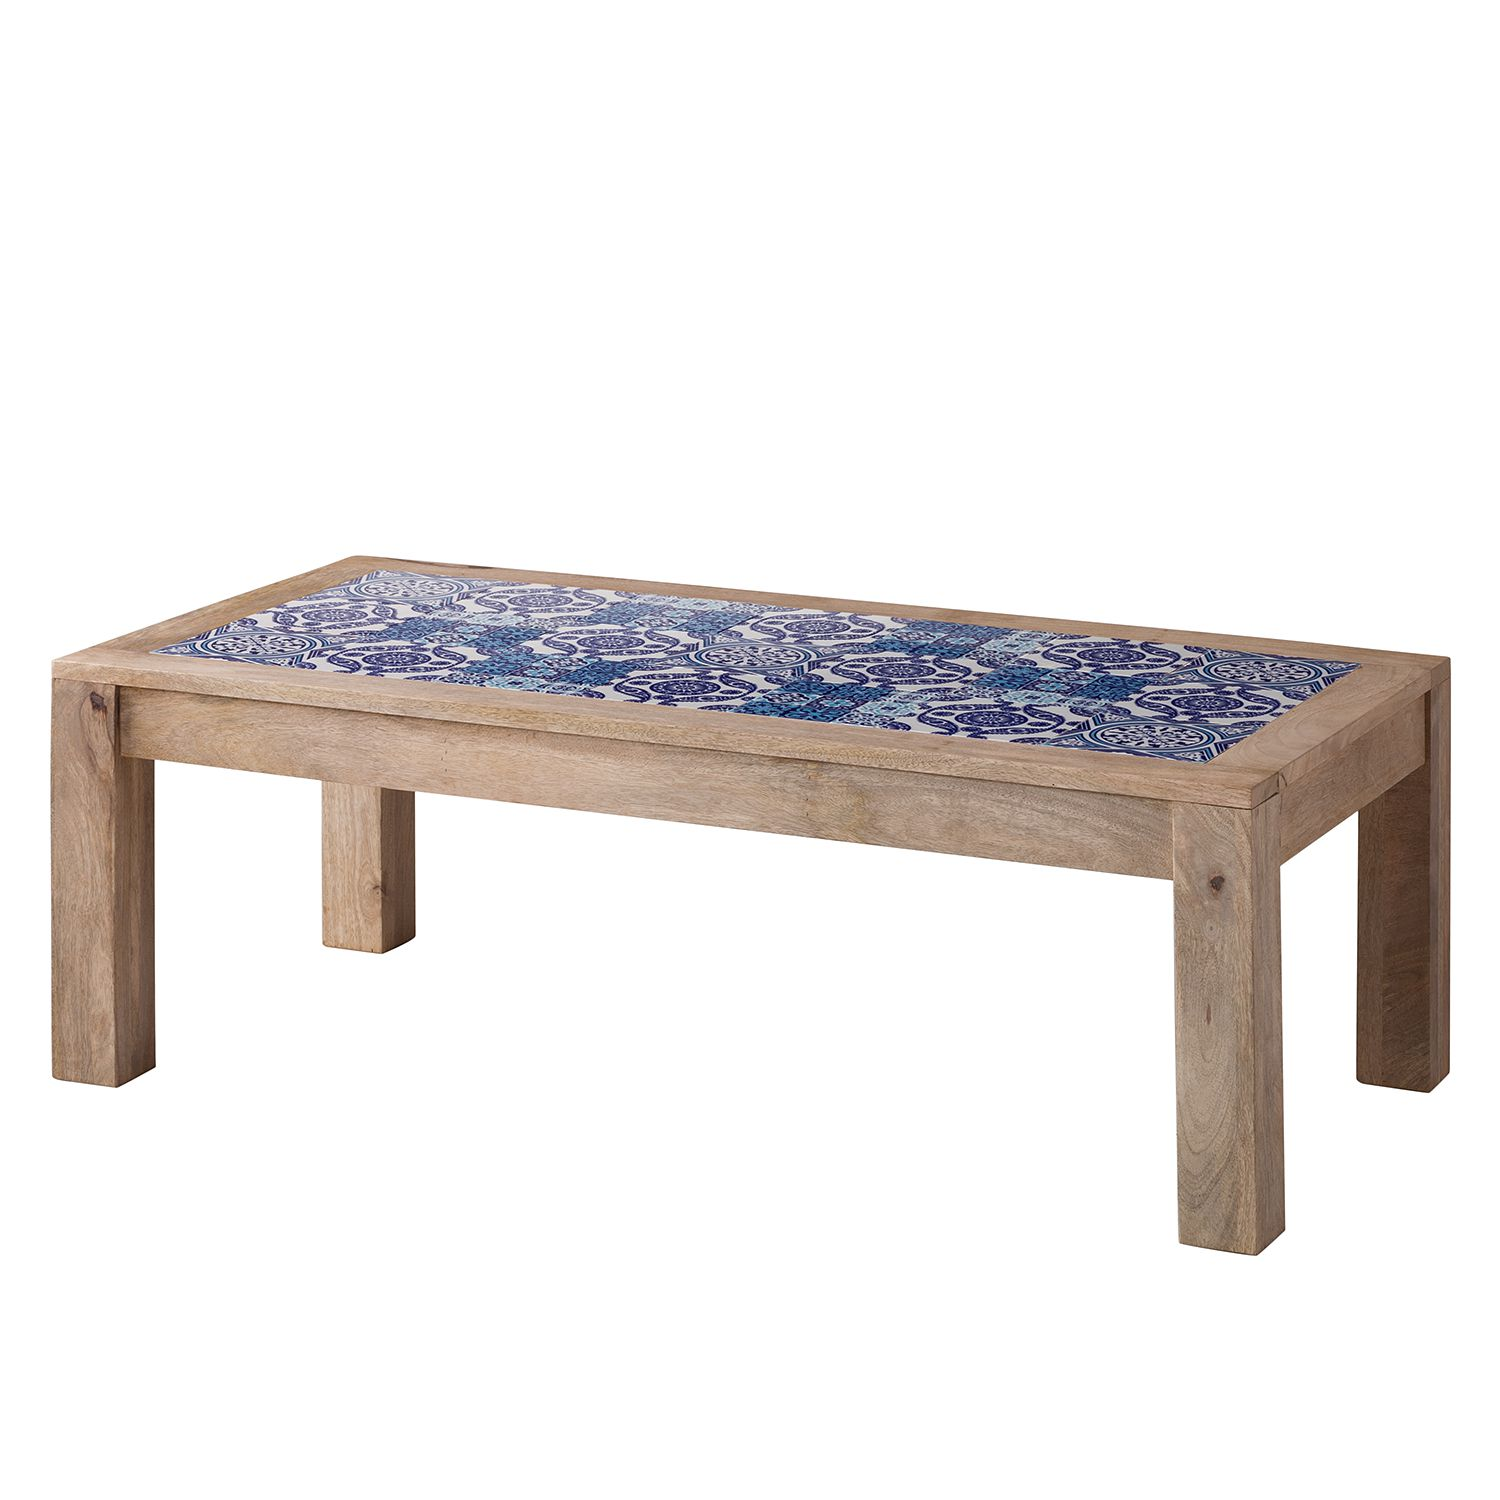 Table basse Ibiza - Manguier massif / Céramique - Manguier / Bleu, ars manufacti